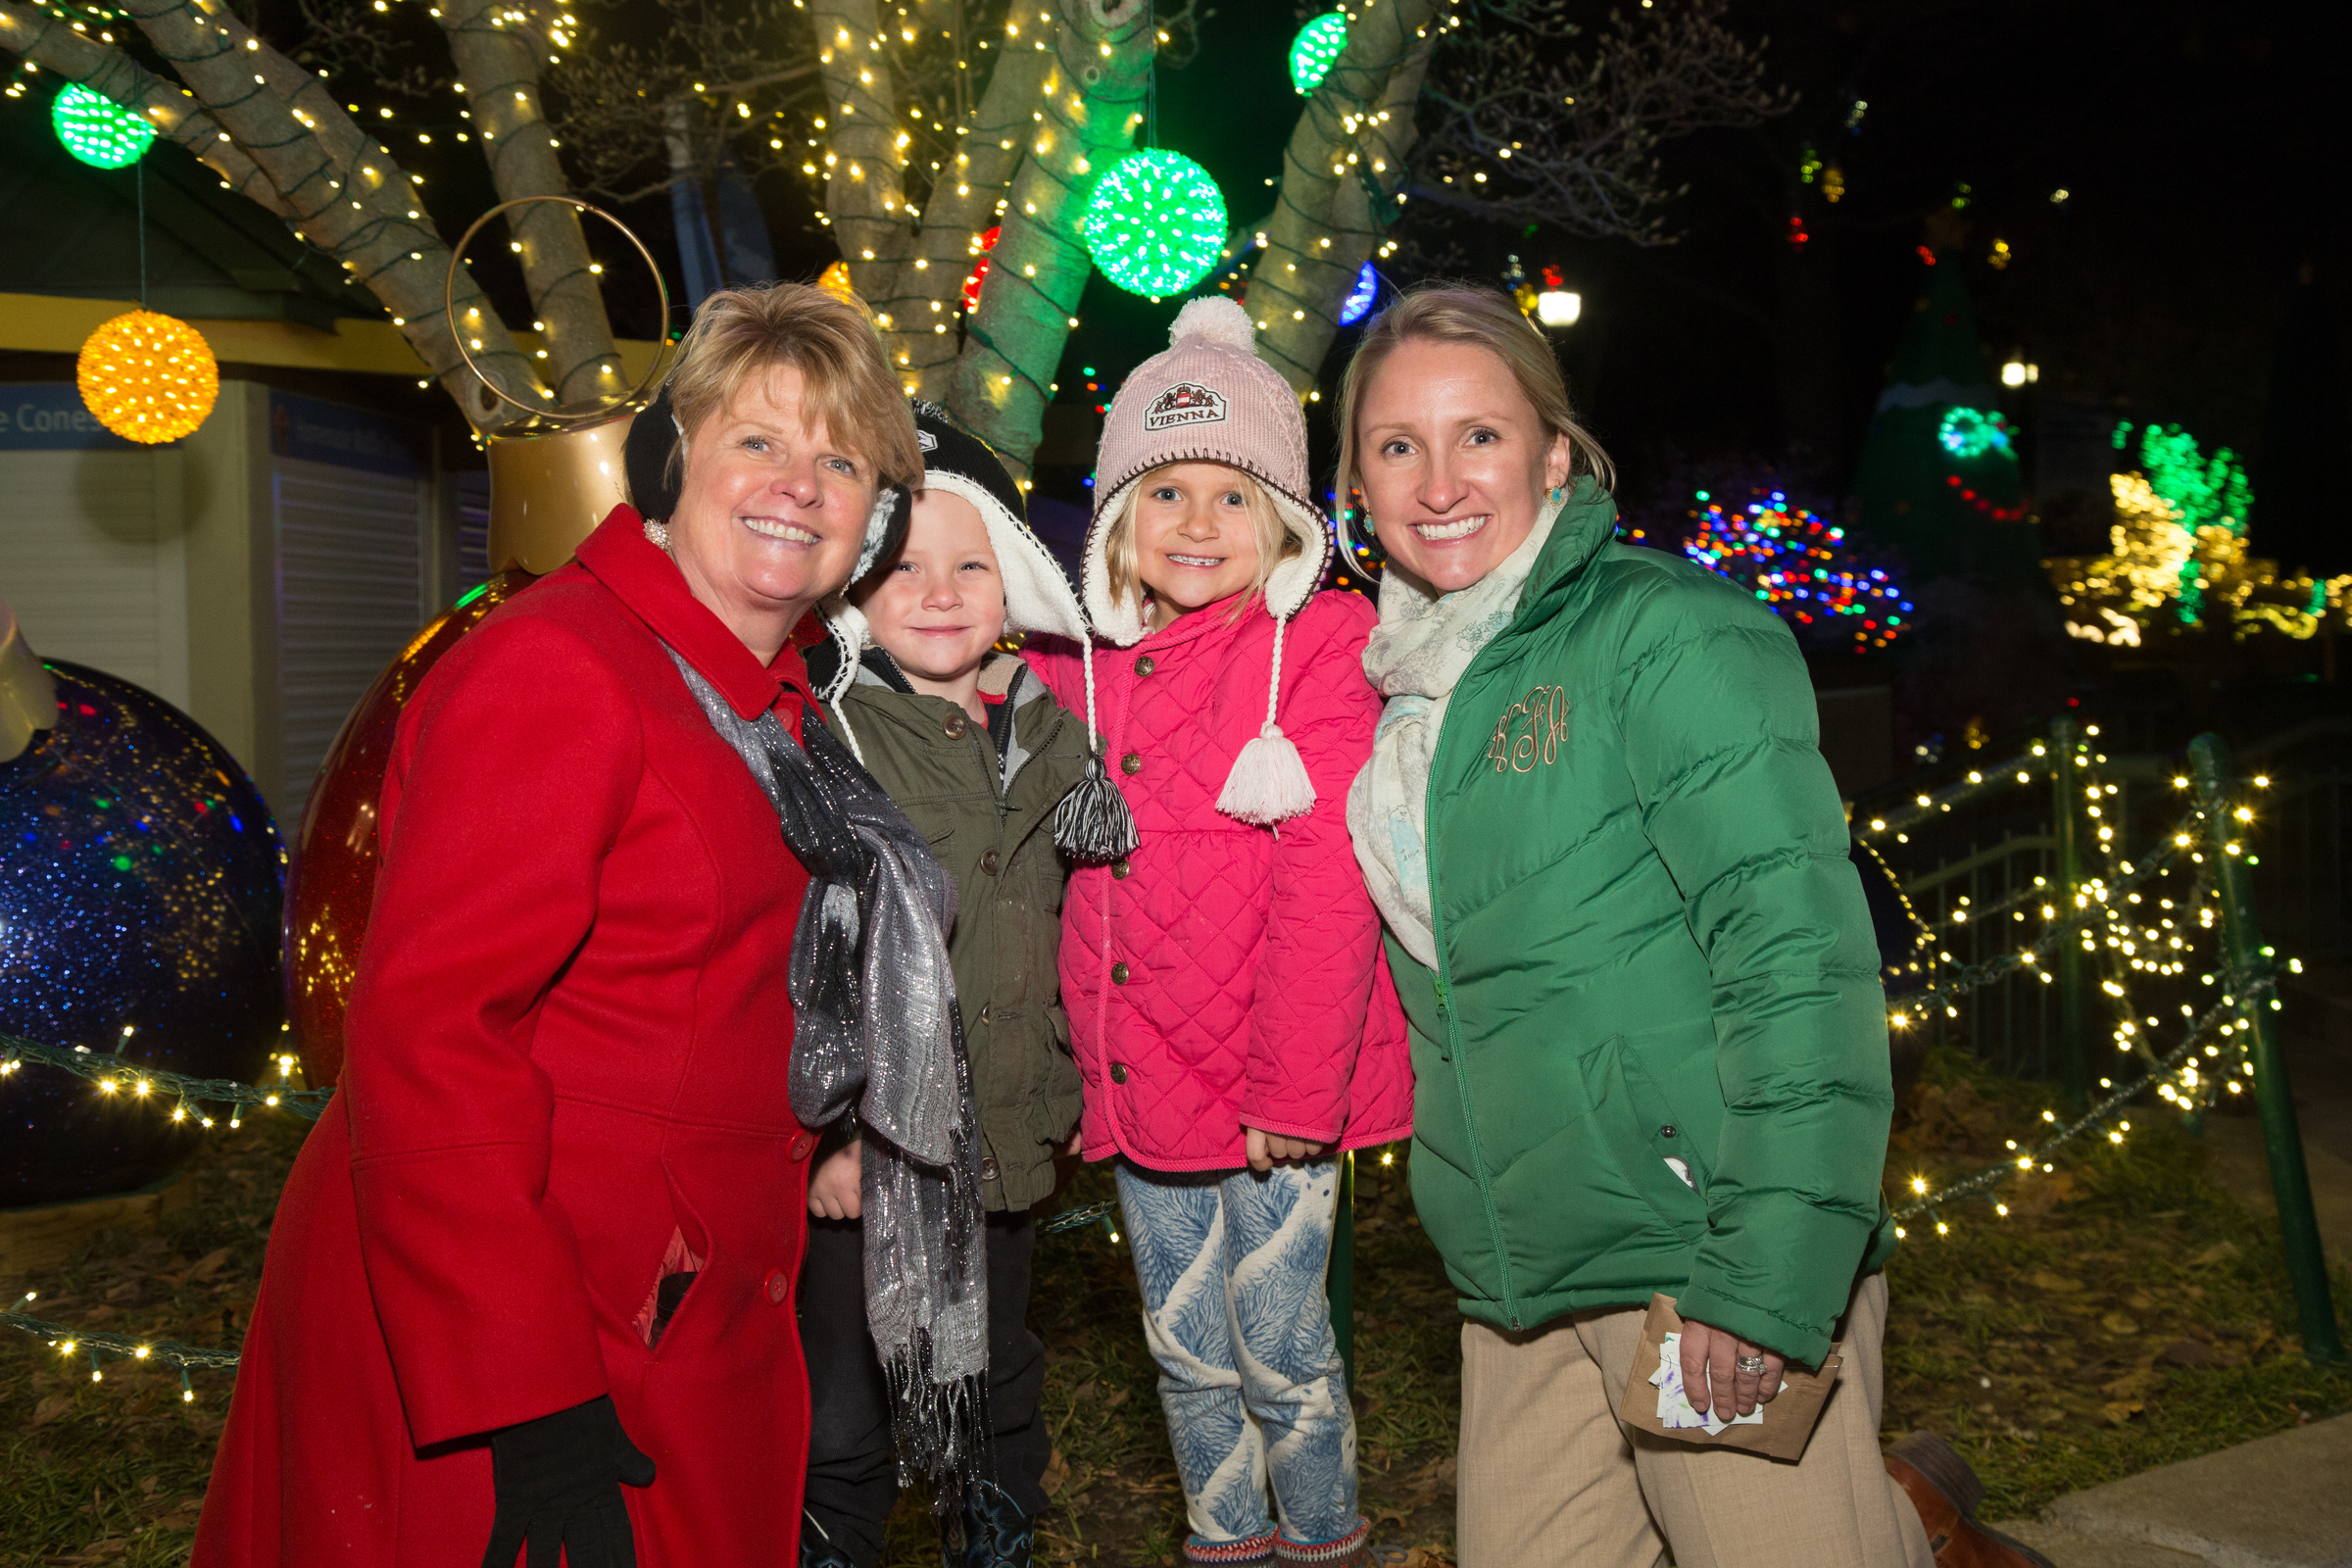 St Louis Christmas Lights 2019 Hours & Prices | Saint Louis Zoo